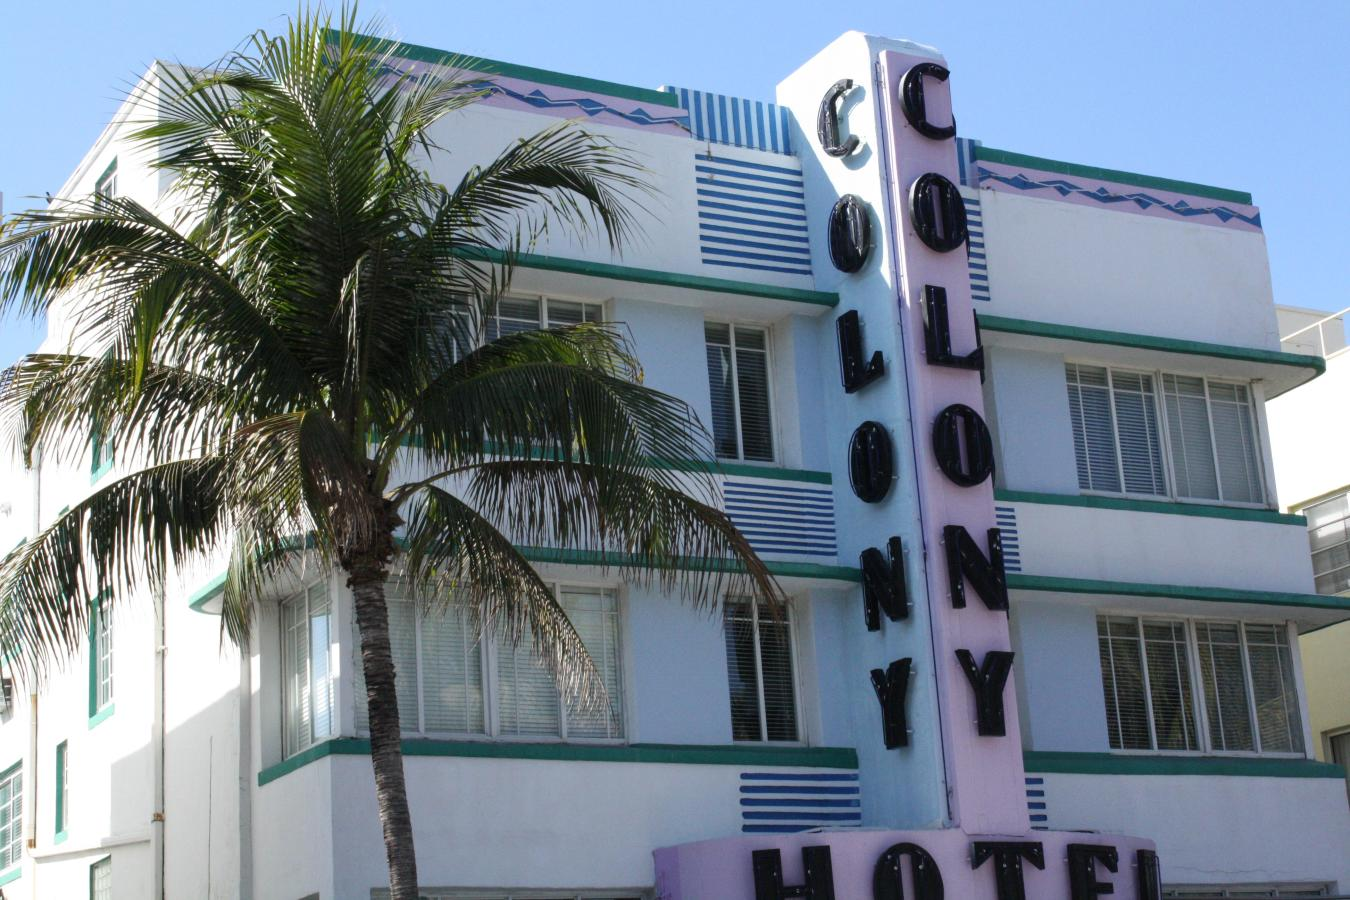 Preserving, promoting, and protecting the Miami Beach Art Deco District since 1976